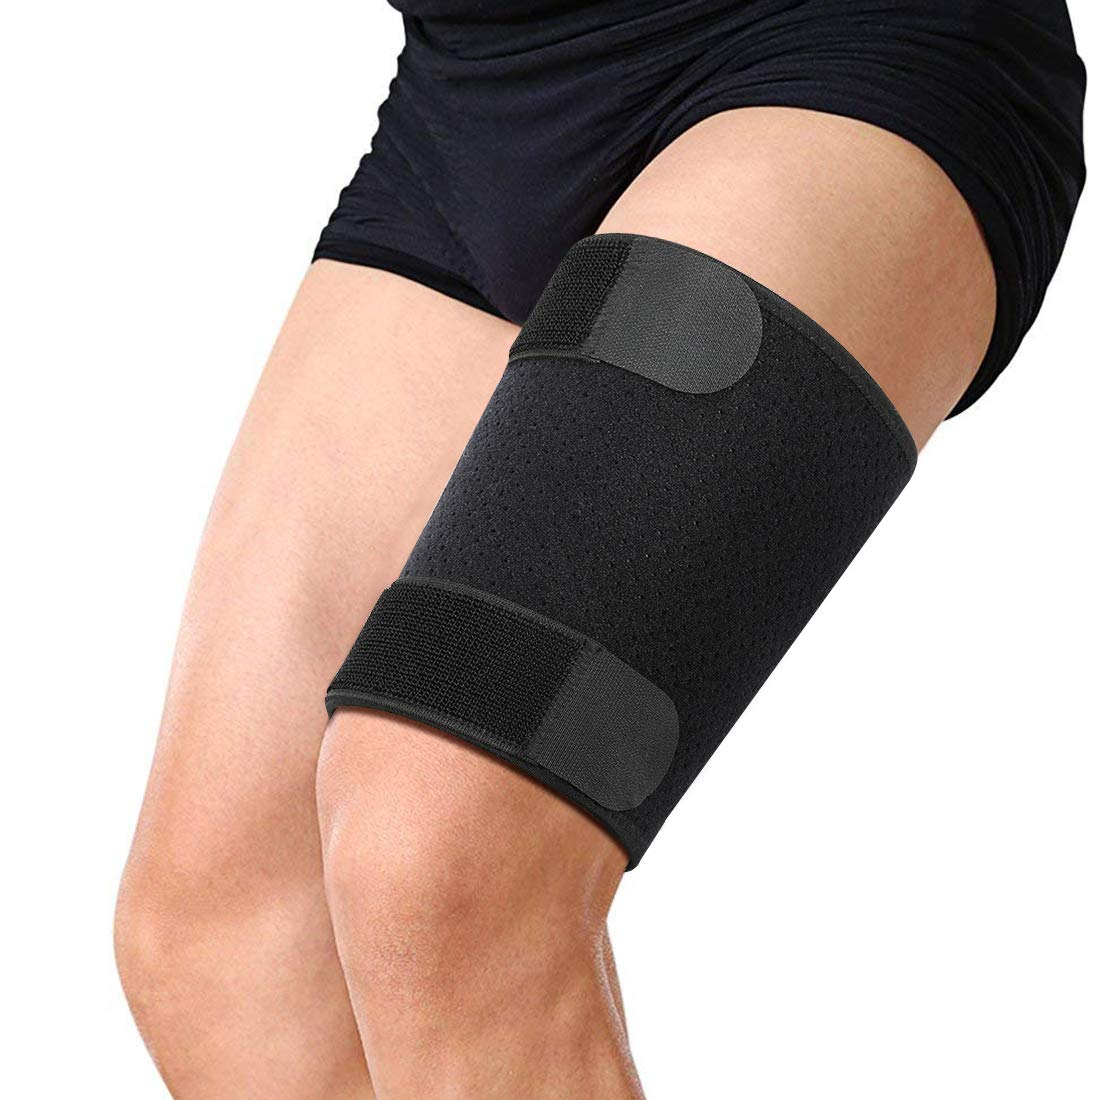 Thigh Brace, Compression Sleeve Support for Quad Groin Pain Relief, Breathable Non-Slip Elastic Thigh Brace Wrap for Men and Women Pulled Hamstring Inflammation Swelling Bruising Tendon Torn Muscle by DOACT